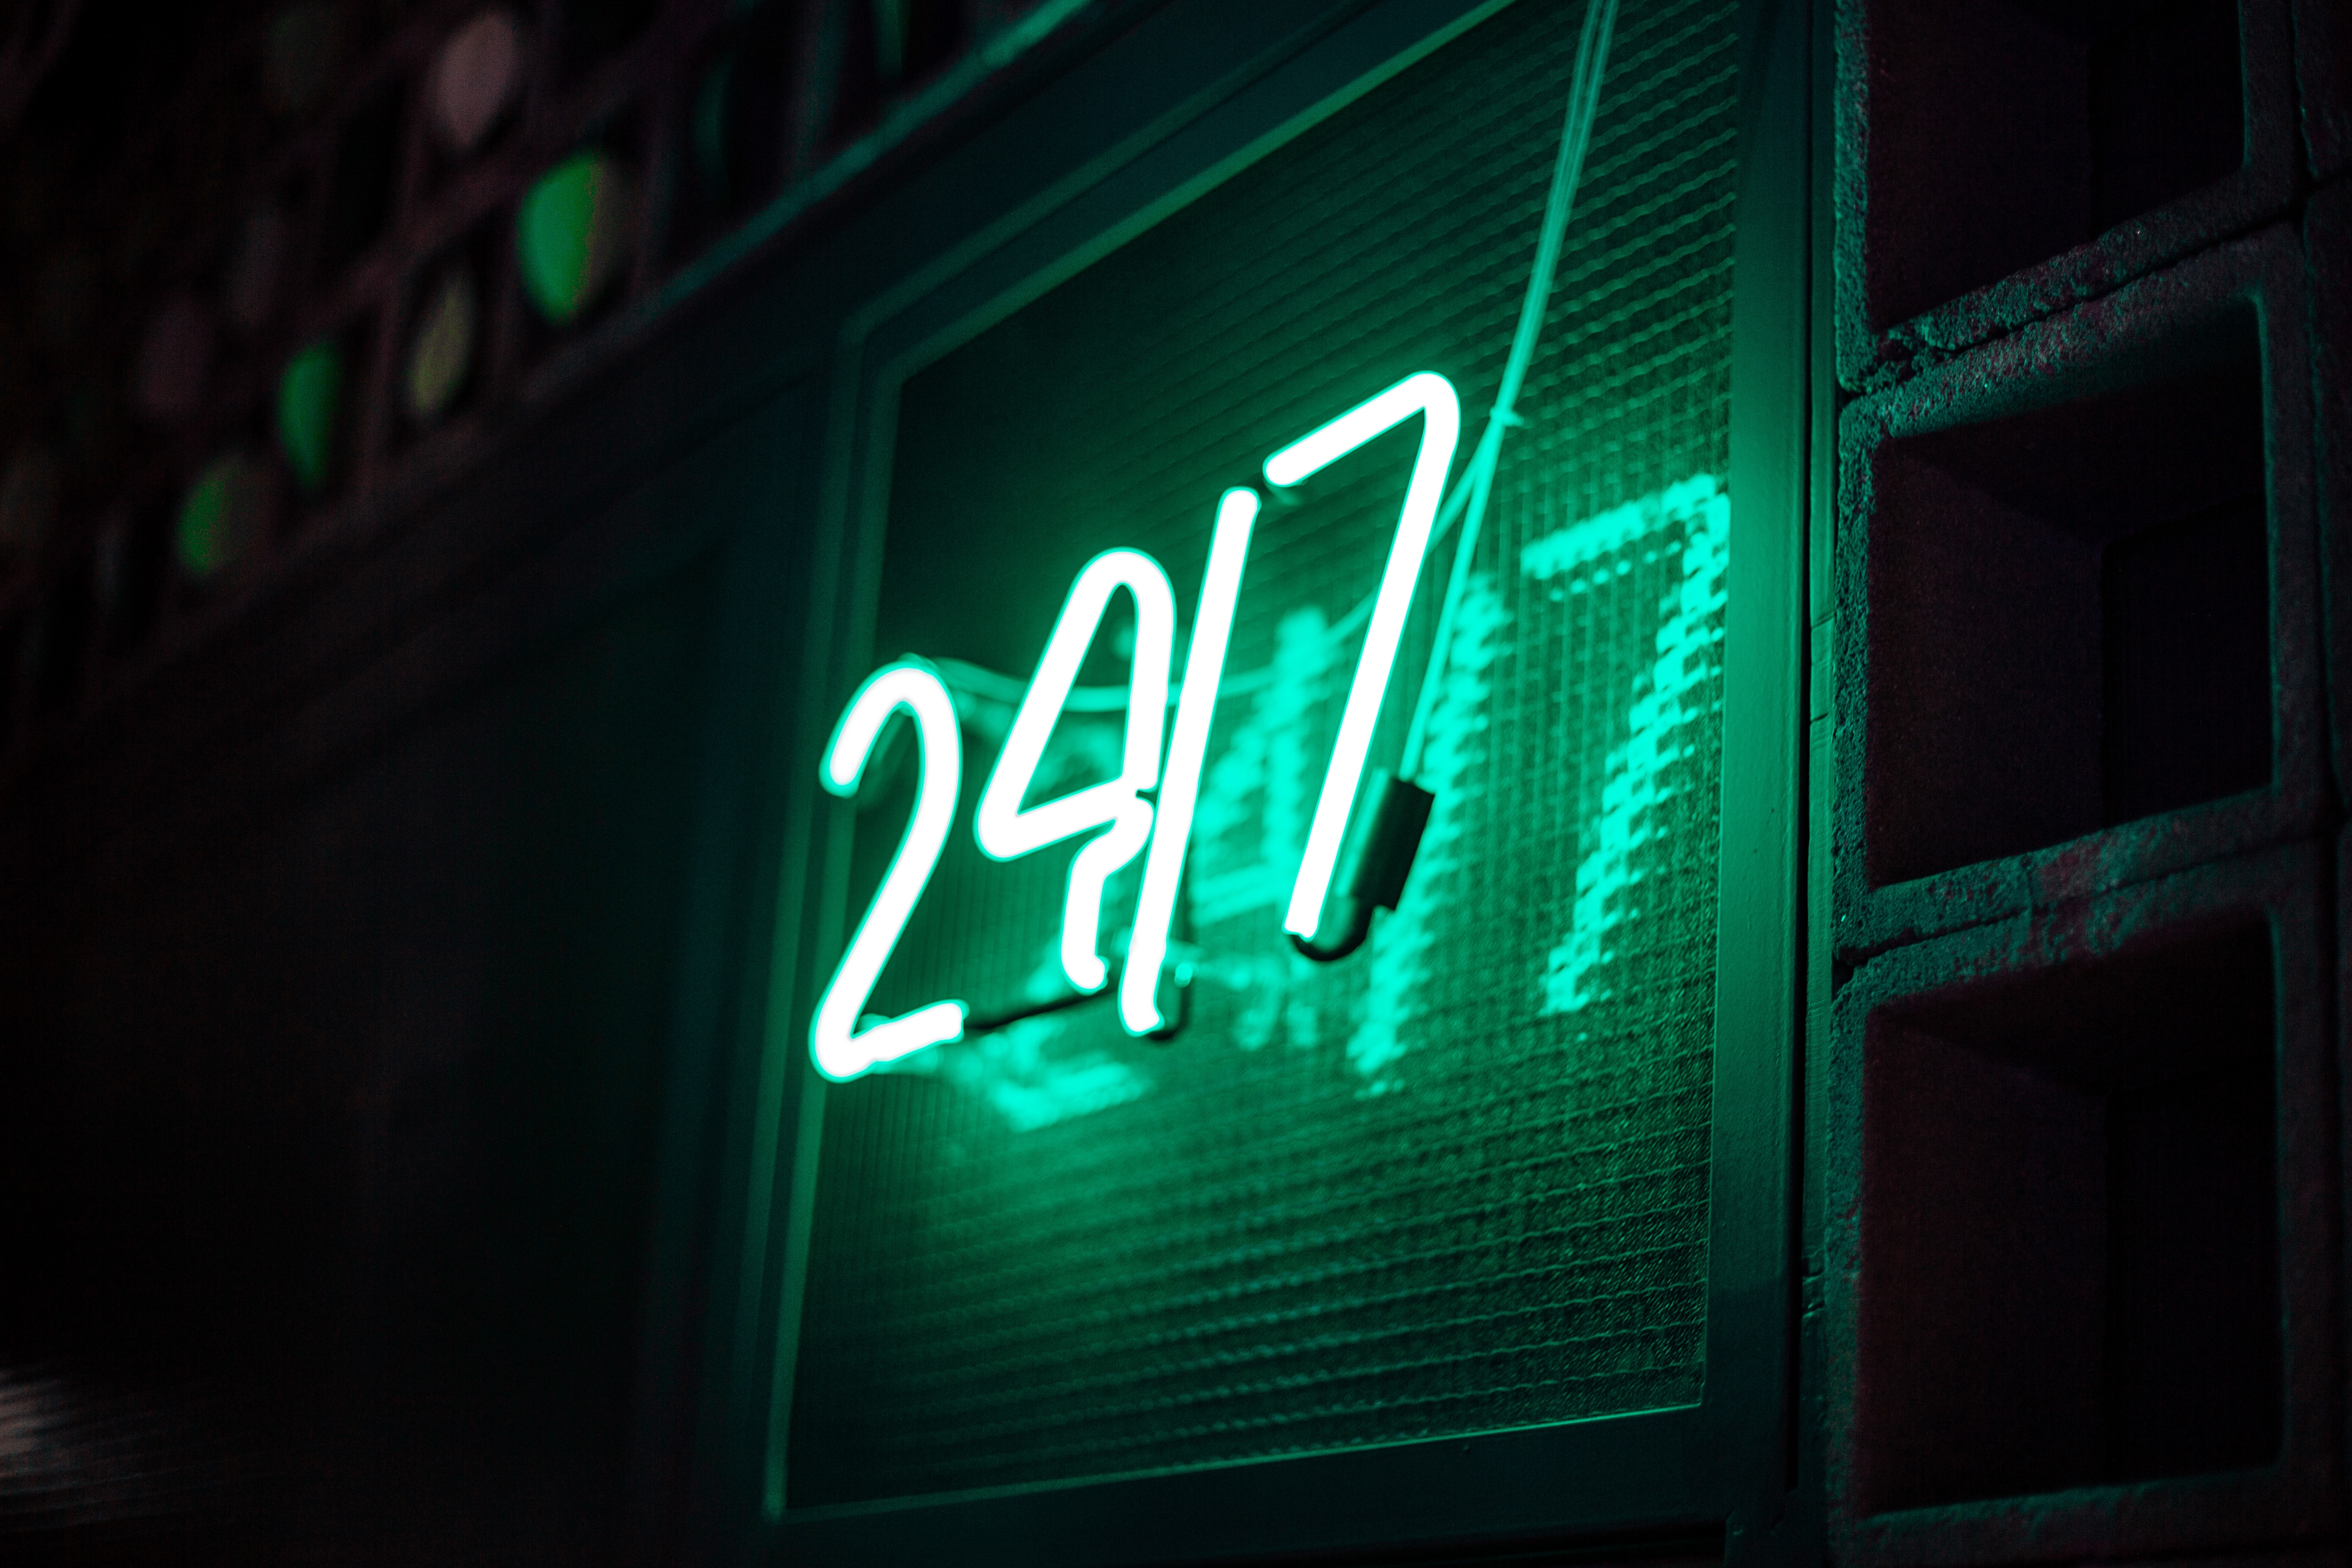 70727 download wallpaper Words, Signboard, Sign, Neon, Numbers, Shine, Light screensavers and pictures for free